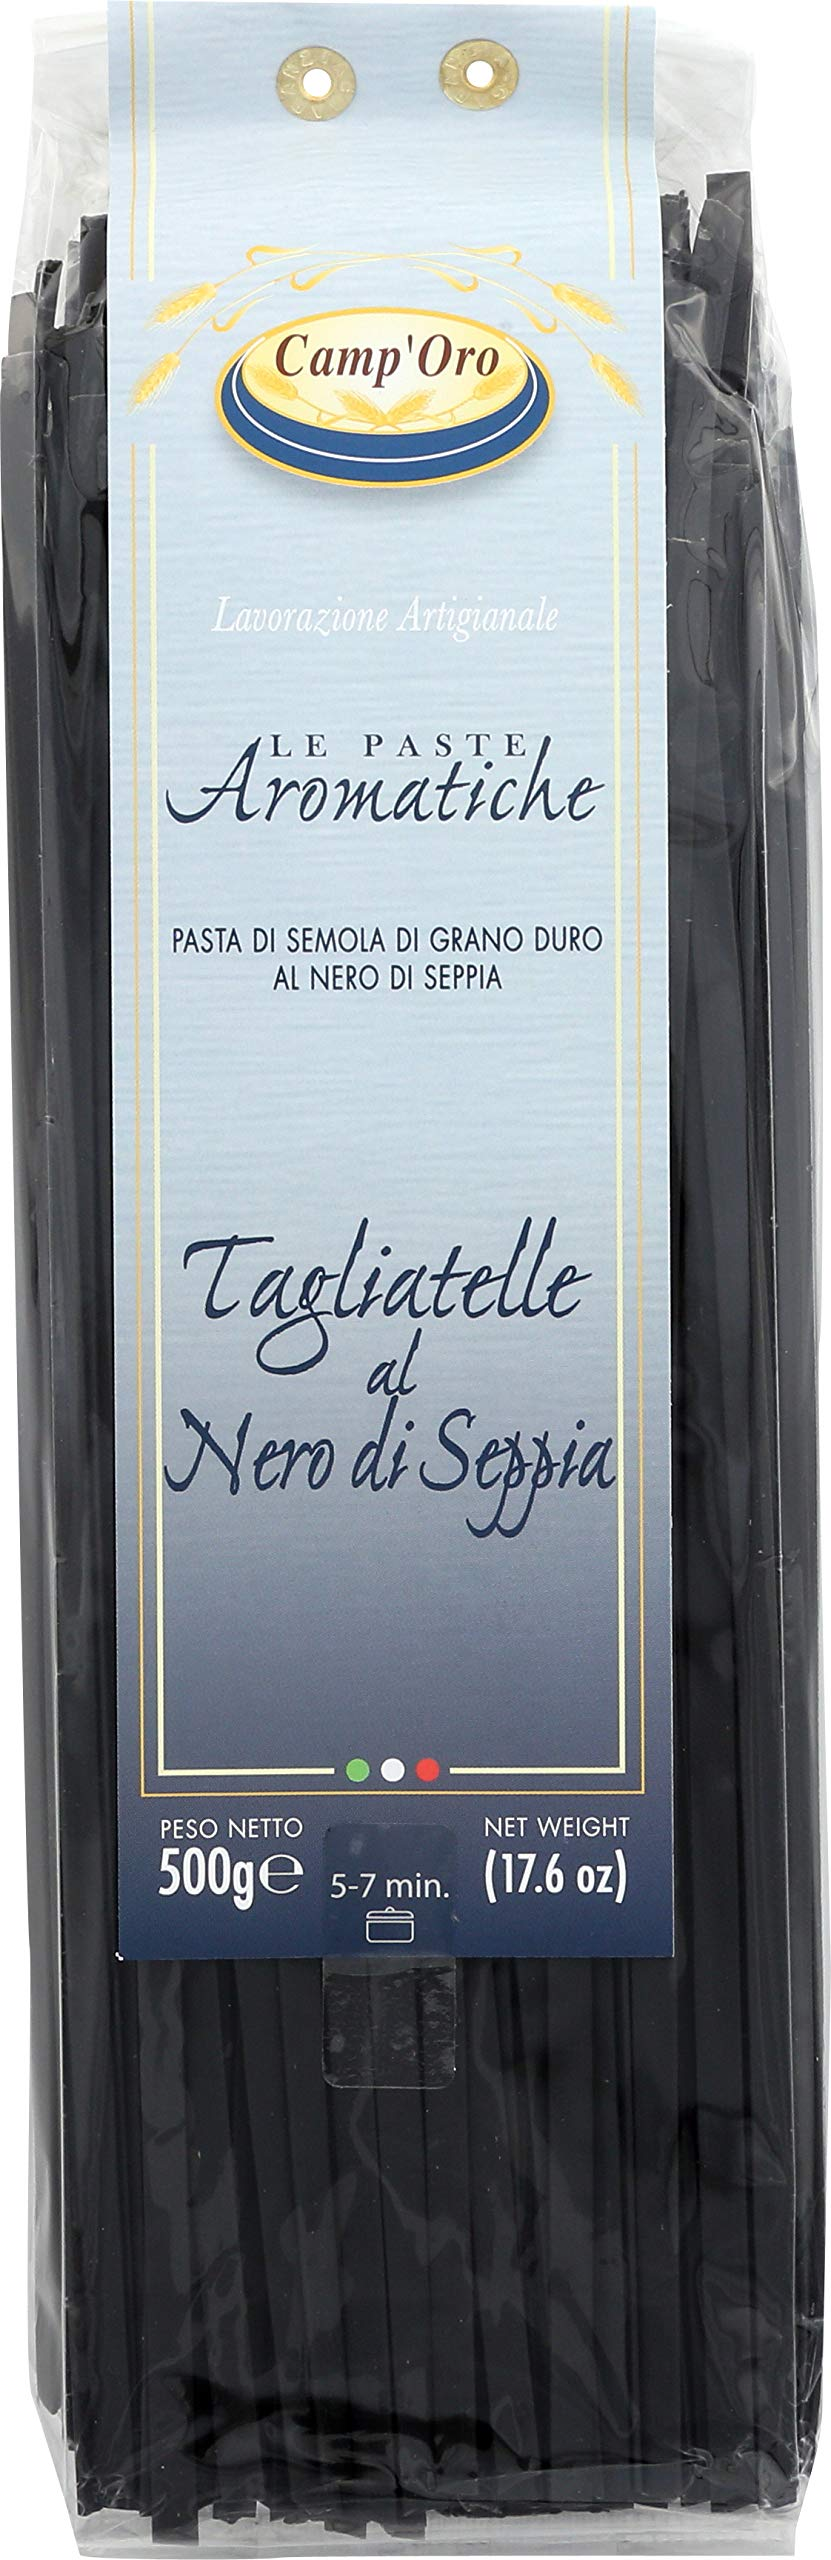 Camp'Oro Le Aromatiche Black Squid Ink Tagliatelle Italian Pasta, Black Squid Ink, 17.6 oz